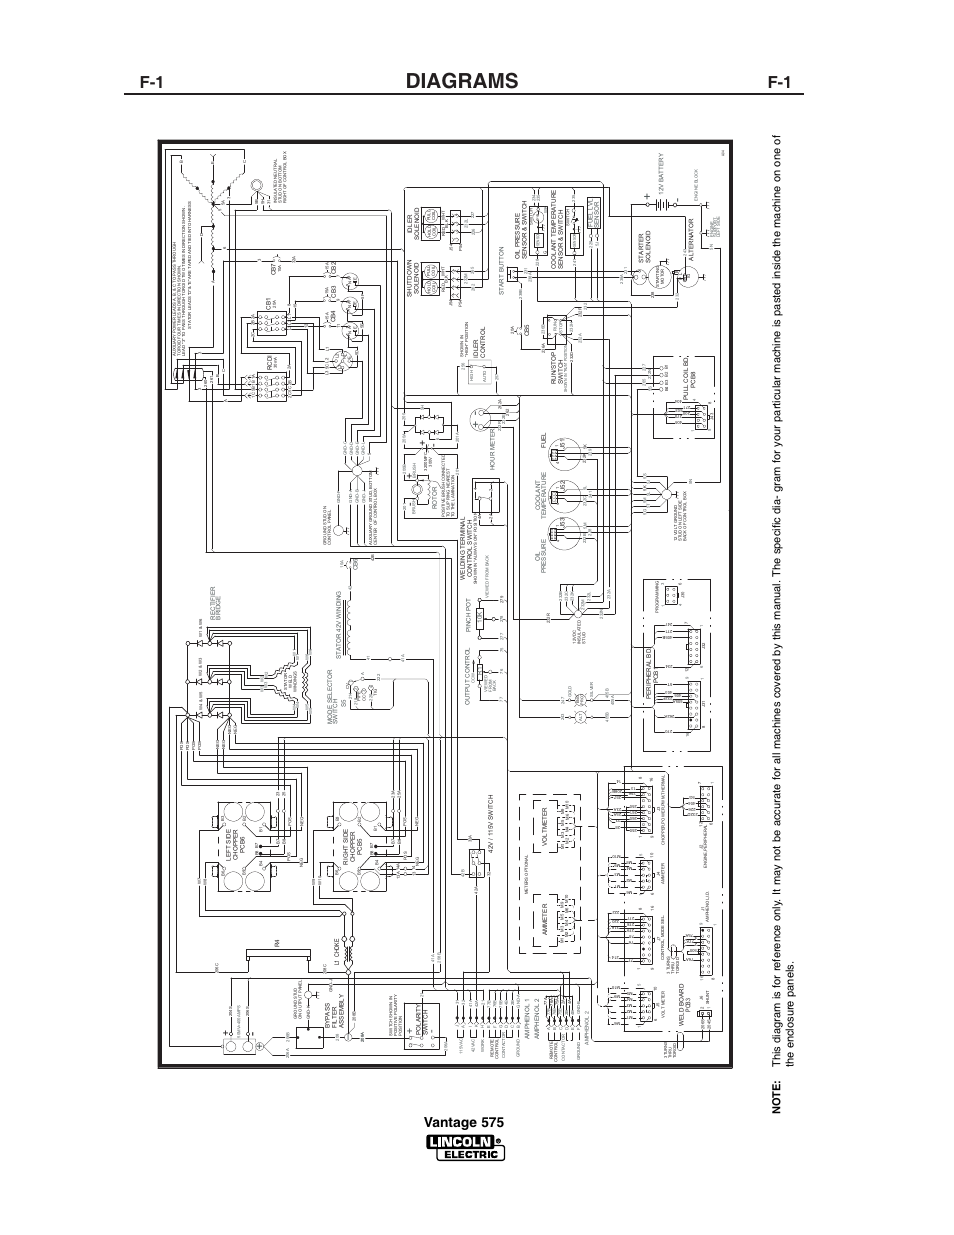 Diagrams Vantage 575 G4176 Lincoln Electric User Wiring Manual Page 36 54